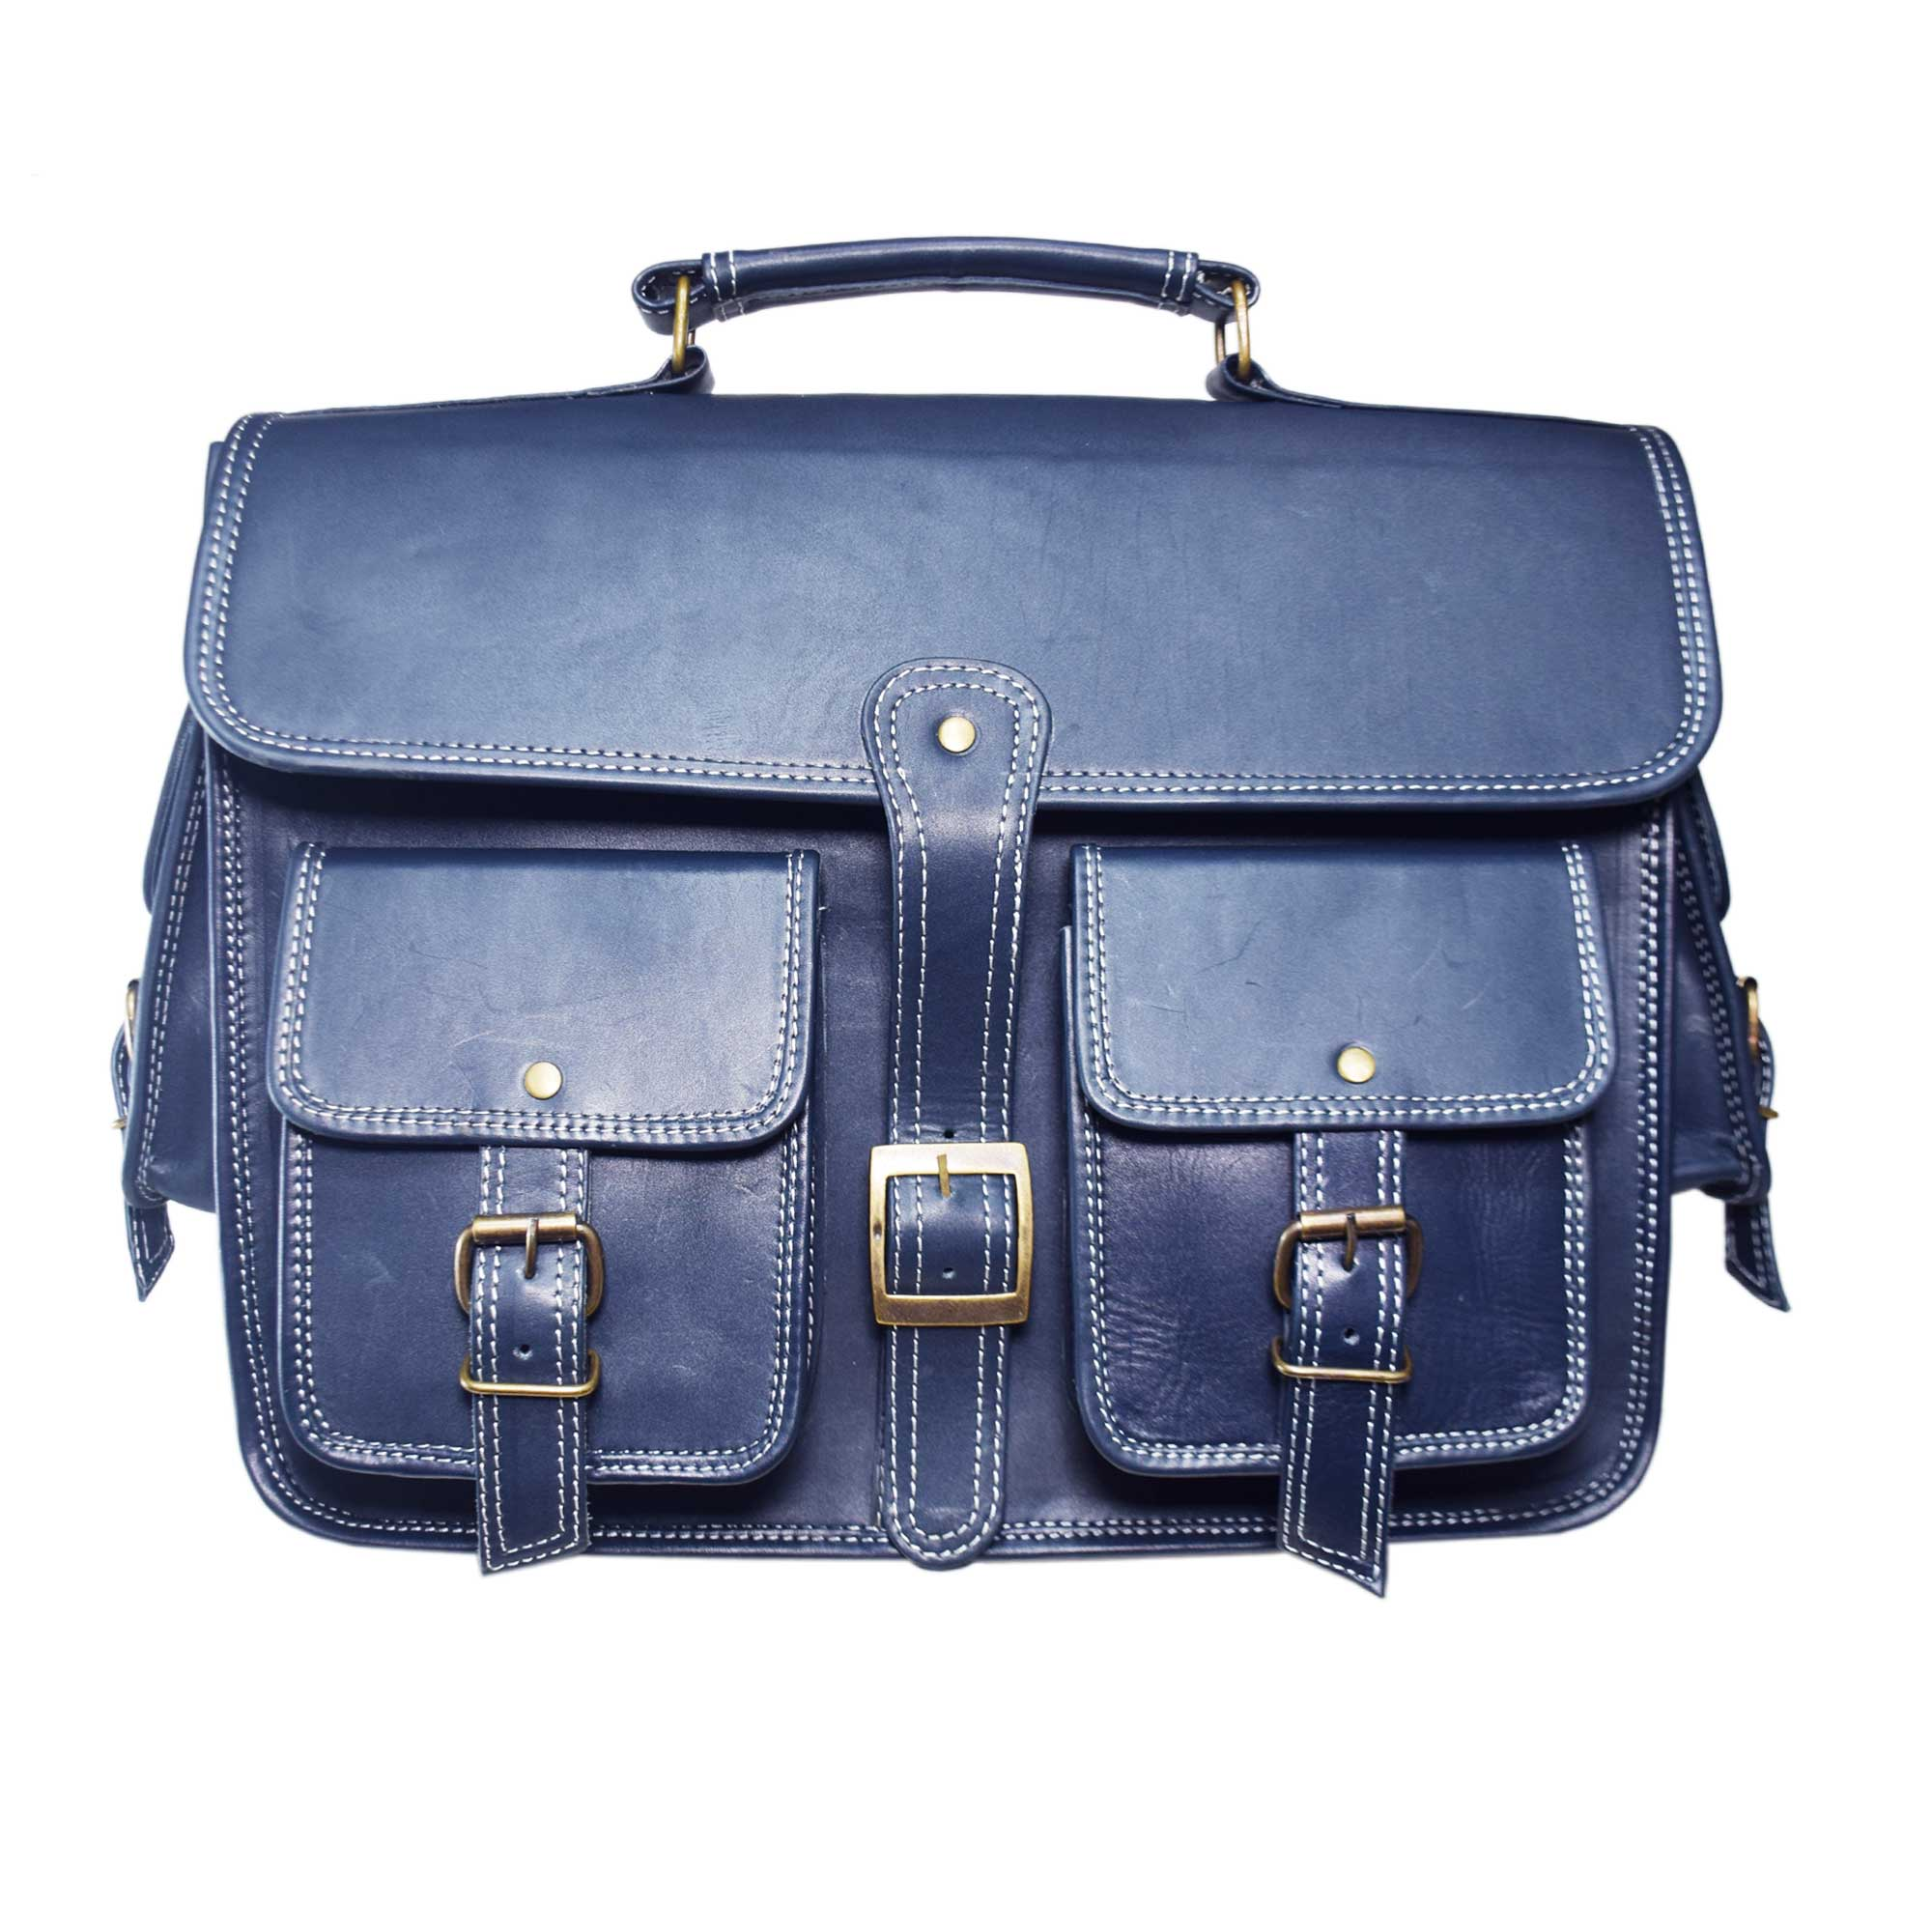 NAVY BLUE LAPTOP / MESSENGER BAG FOR 15